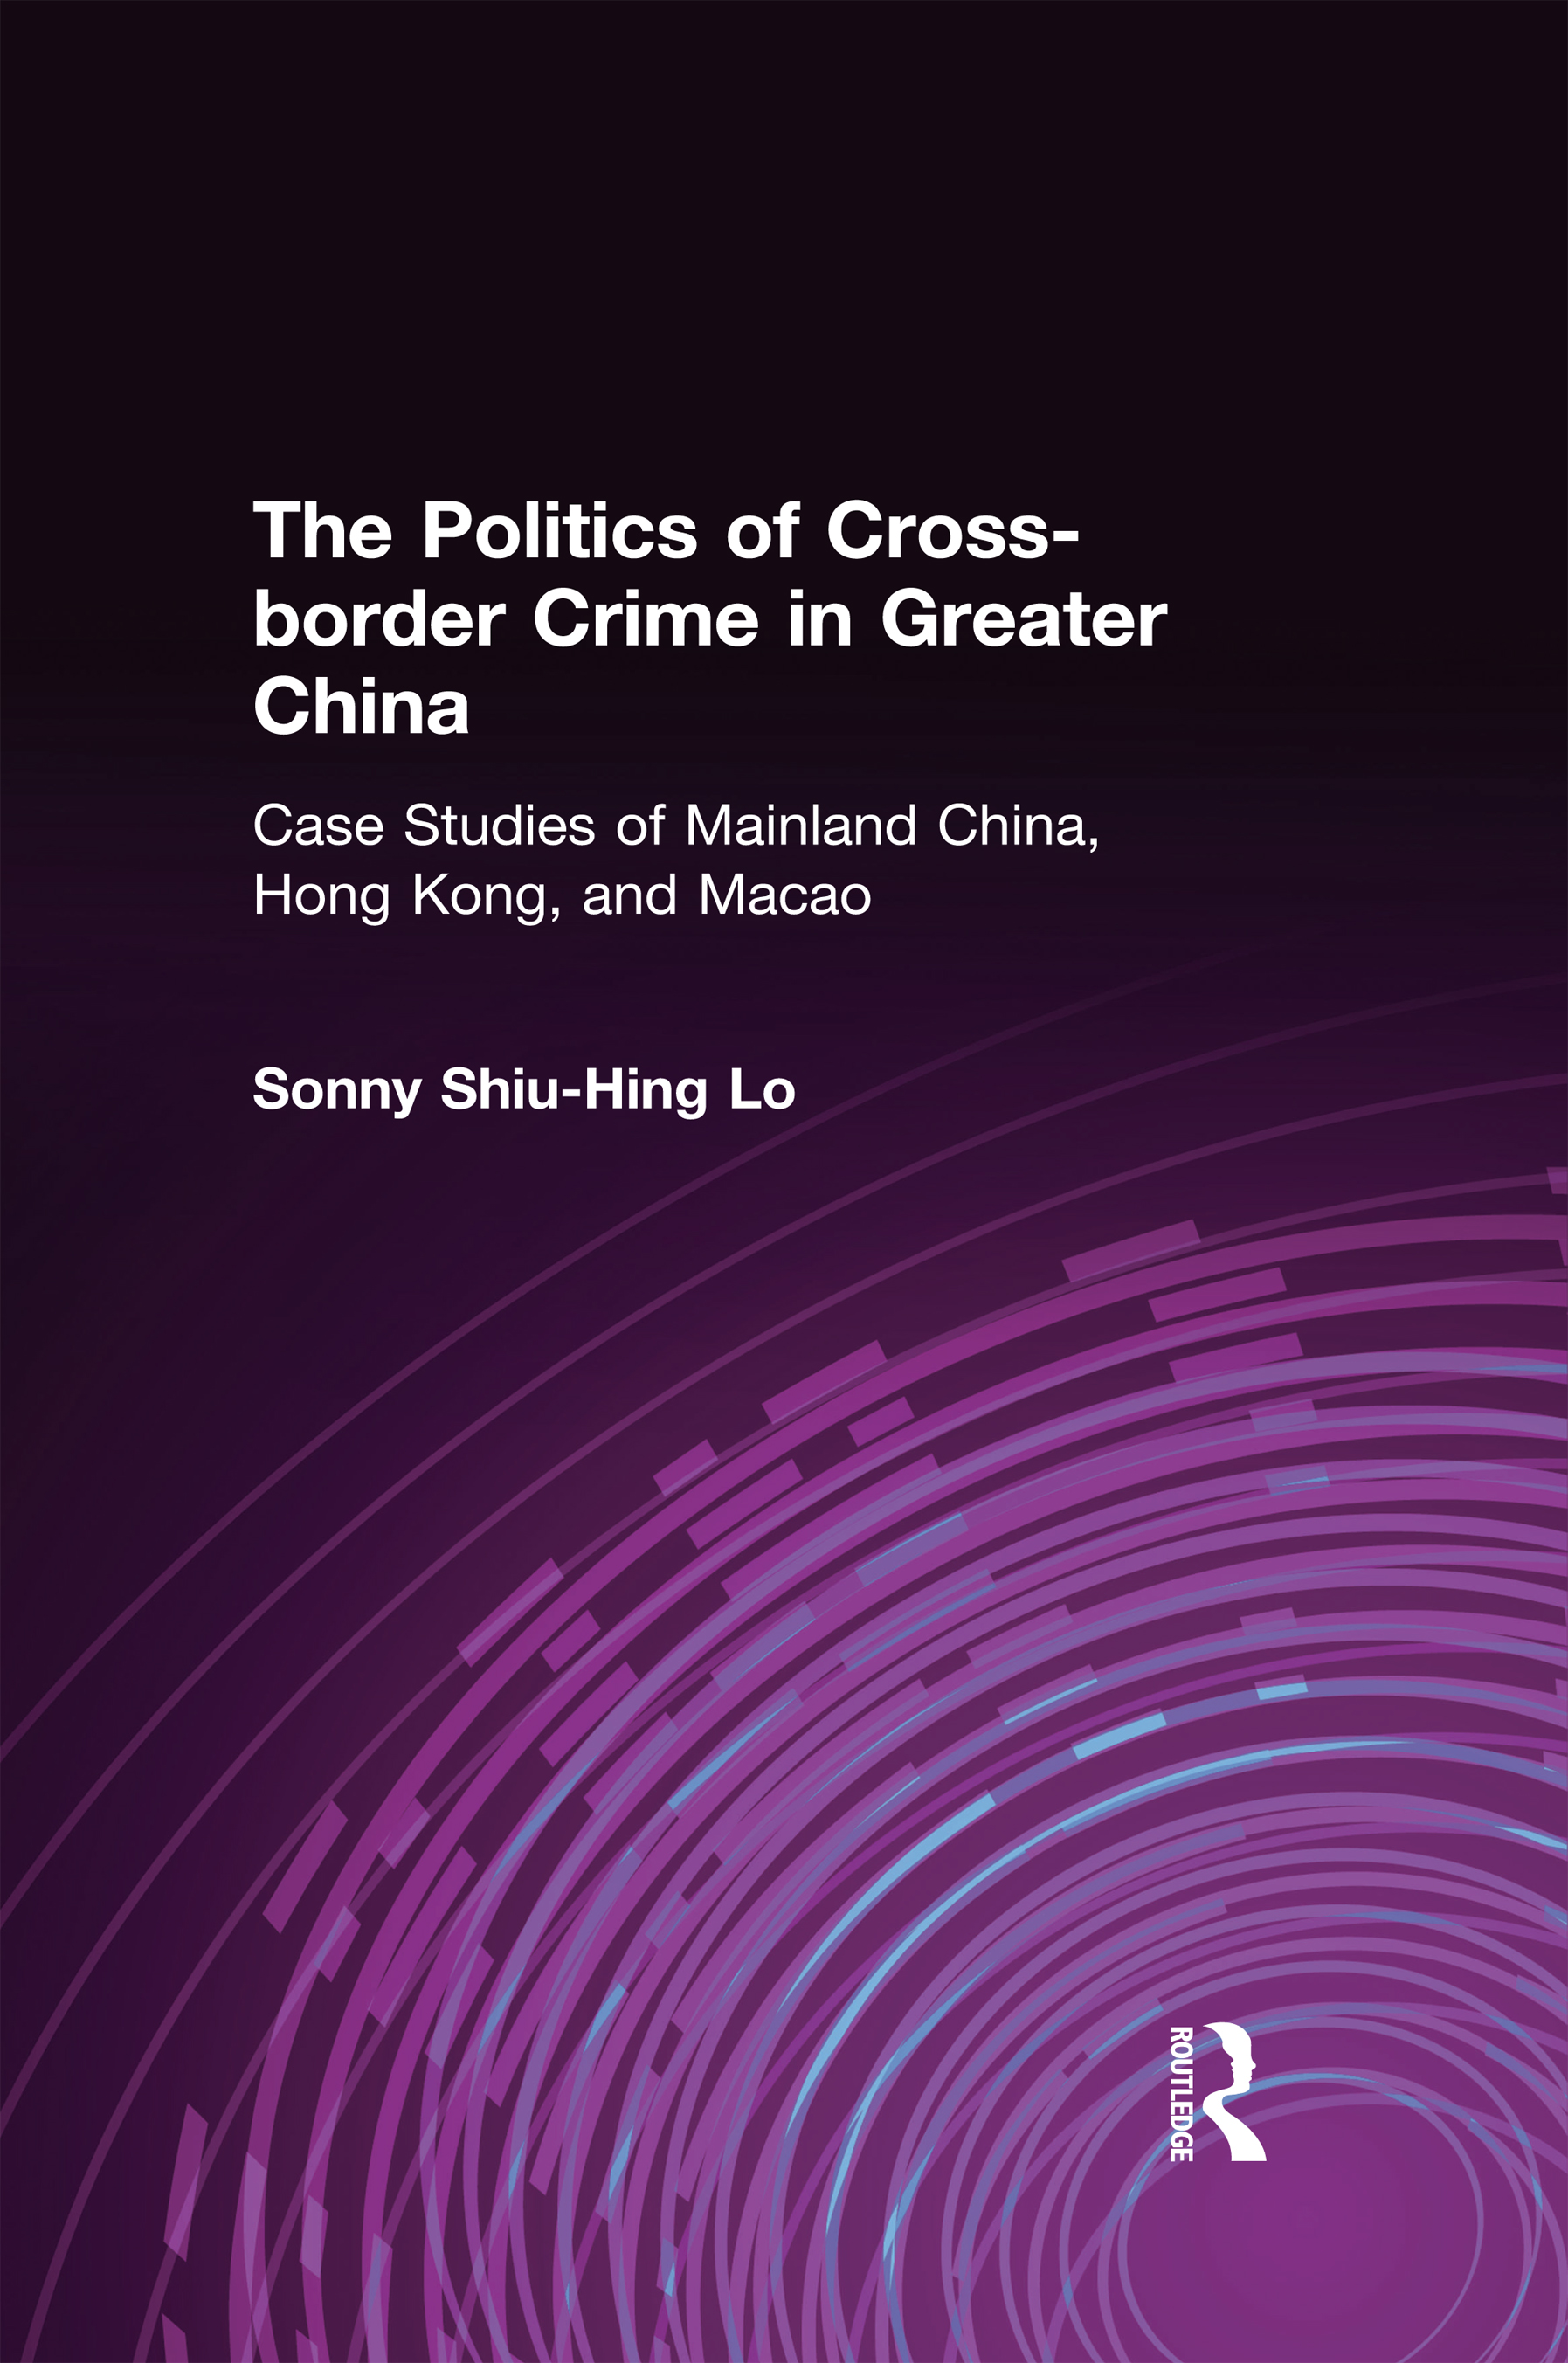 The Politics of Cross-border Crime in Greater China: Case Studies of Mainland China, Hong Kong, and Macao